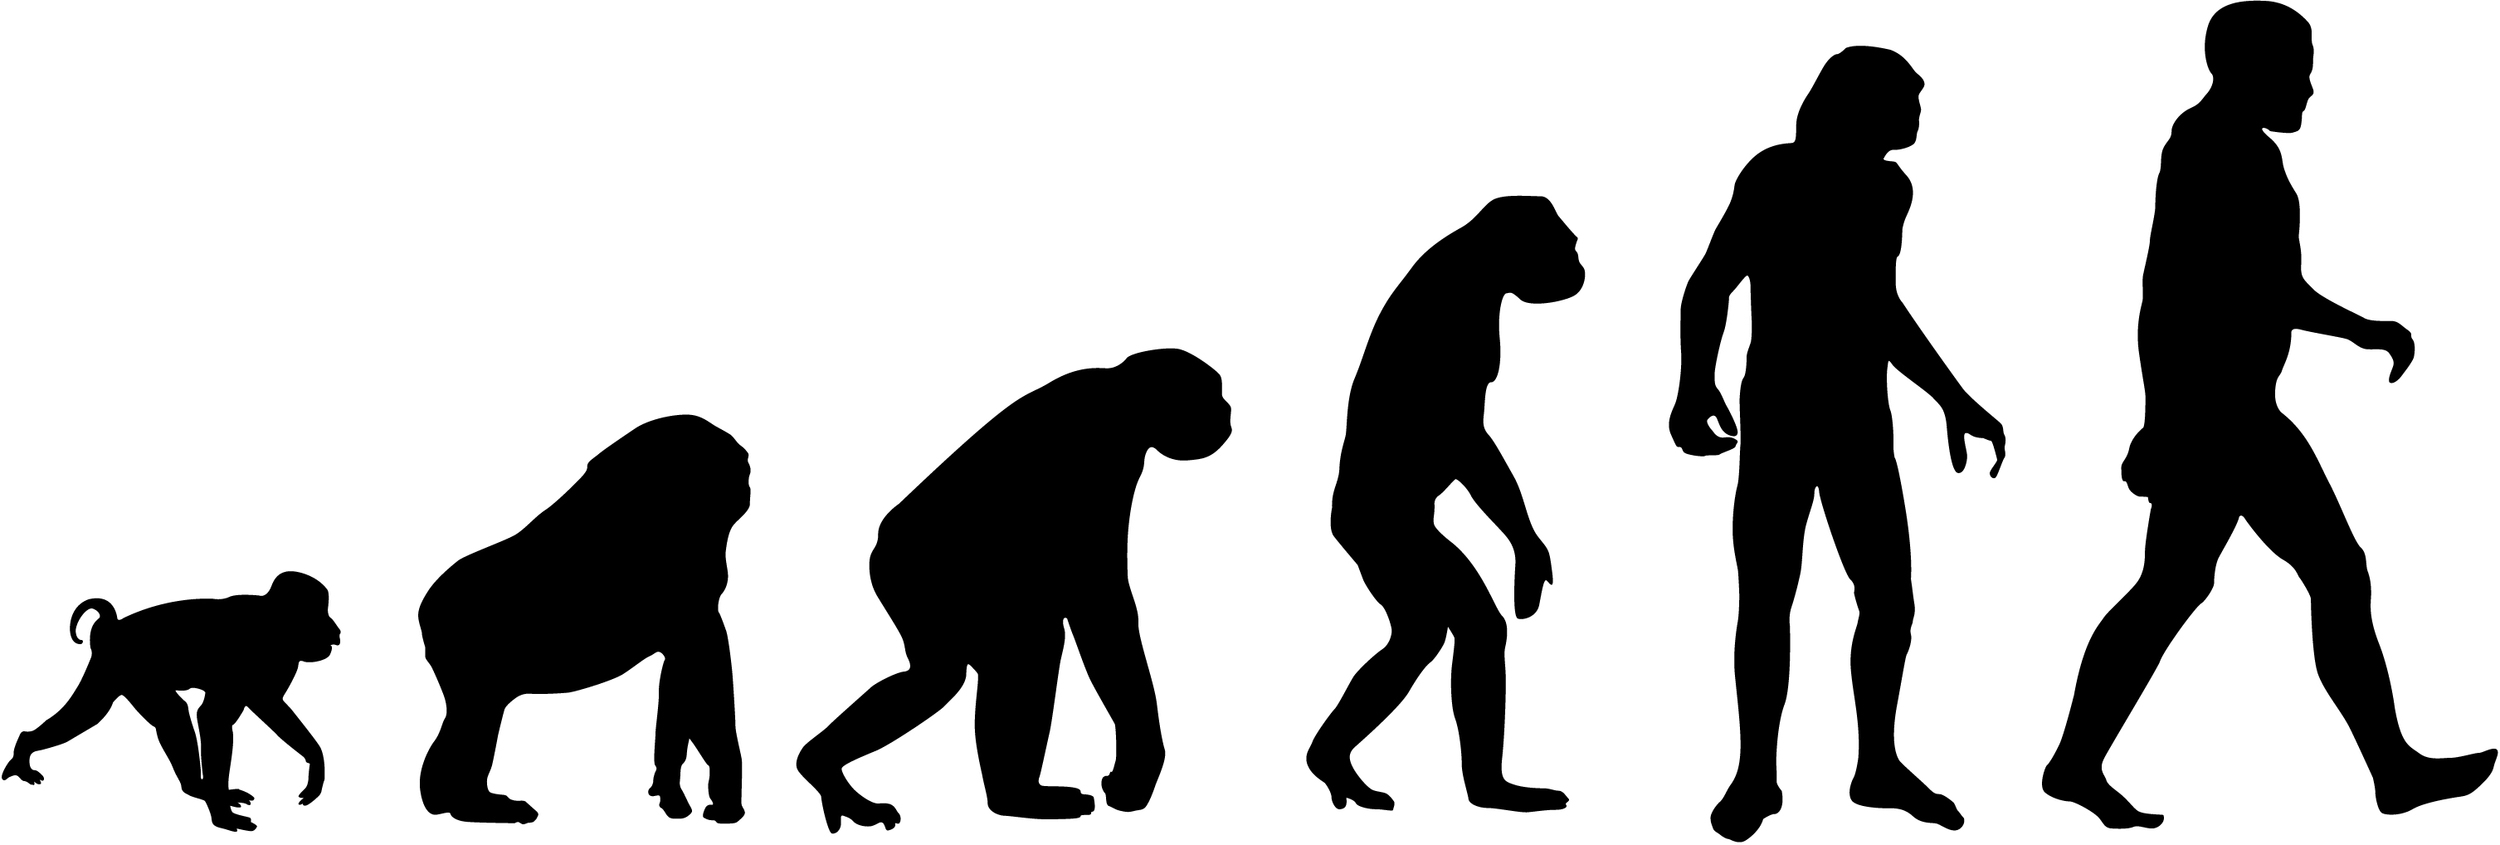 A portrayal of man's evolution